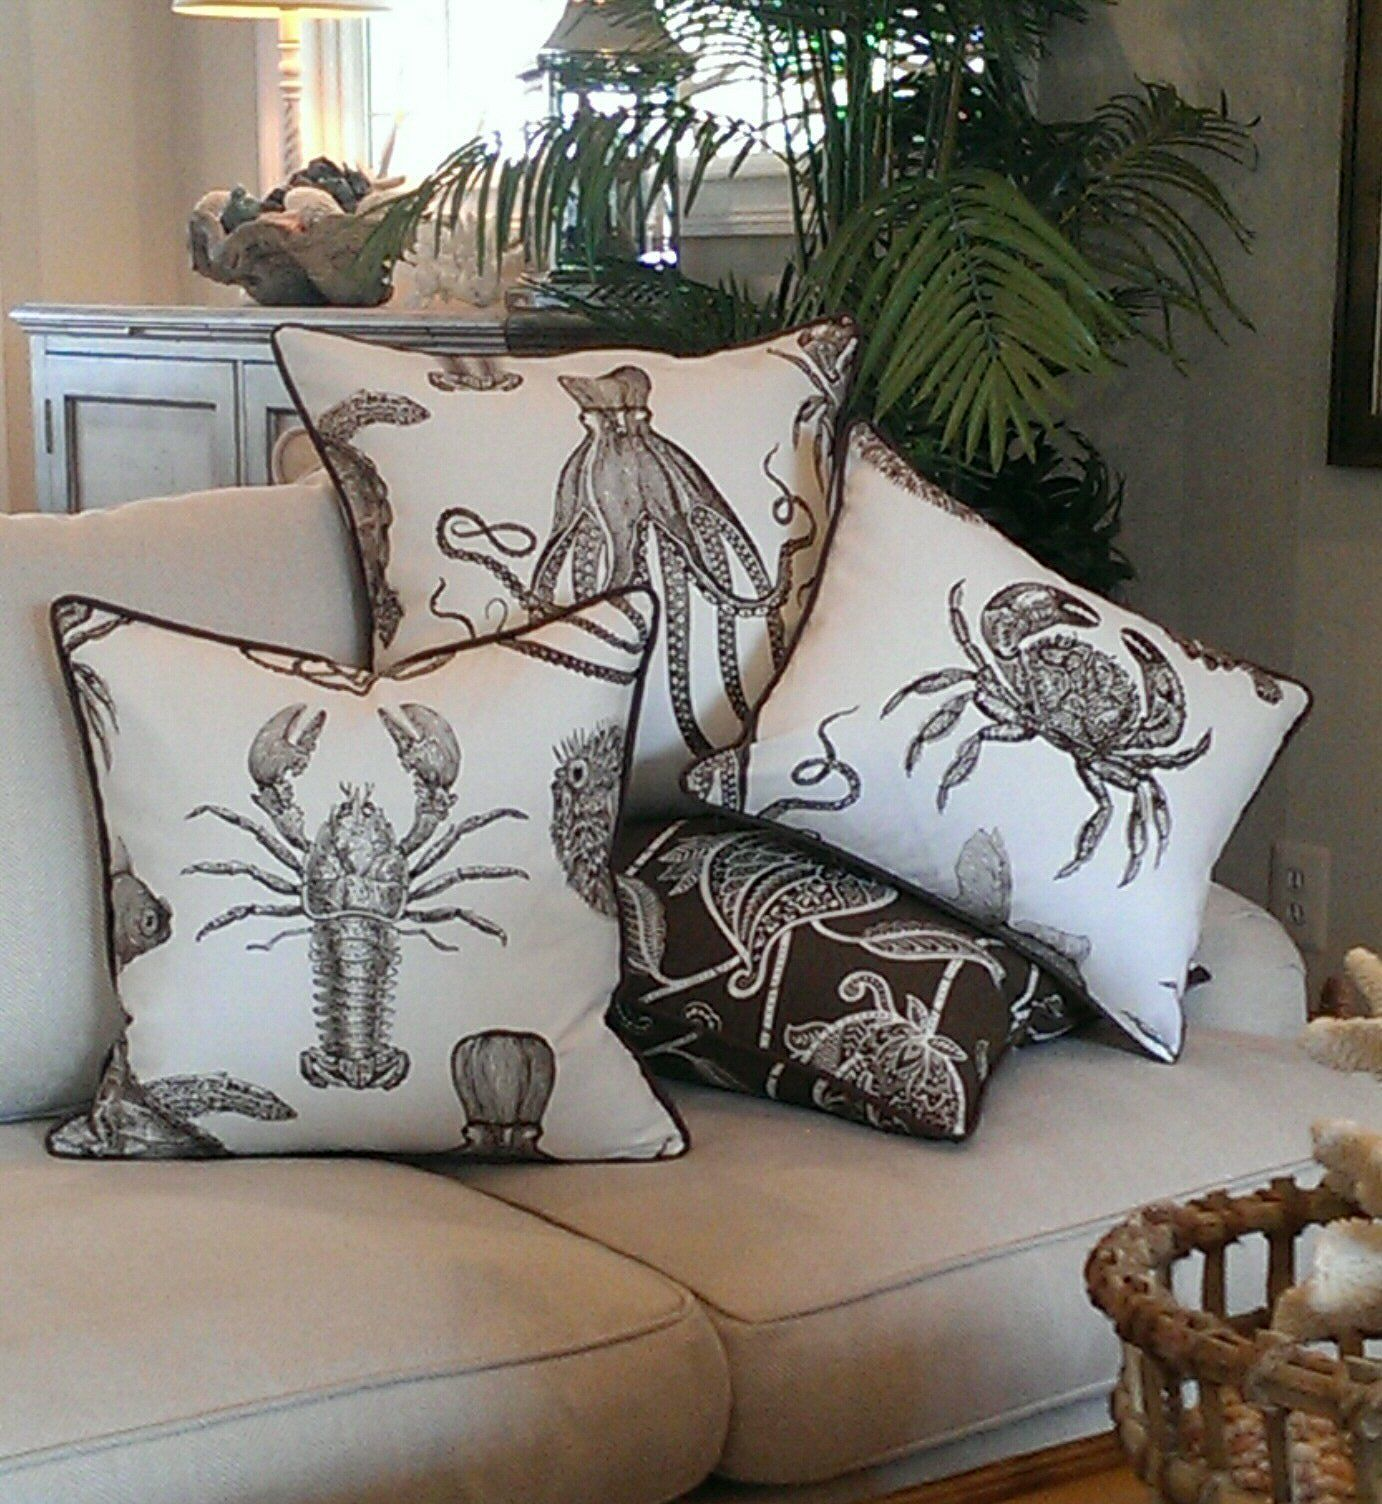 leaf decor pillows rainforest pin cushion banana home palm cover pattern pillow sofa beach tropical